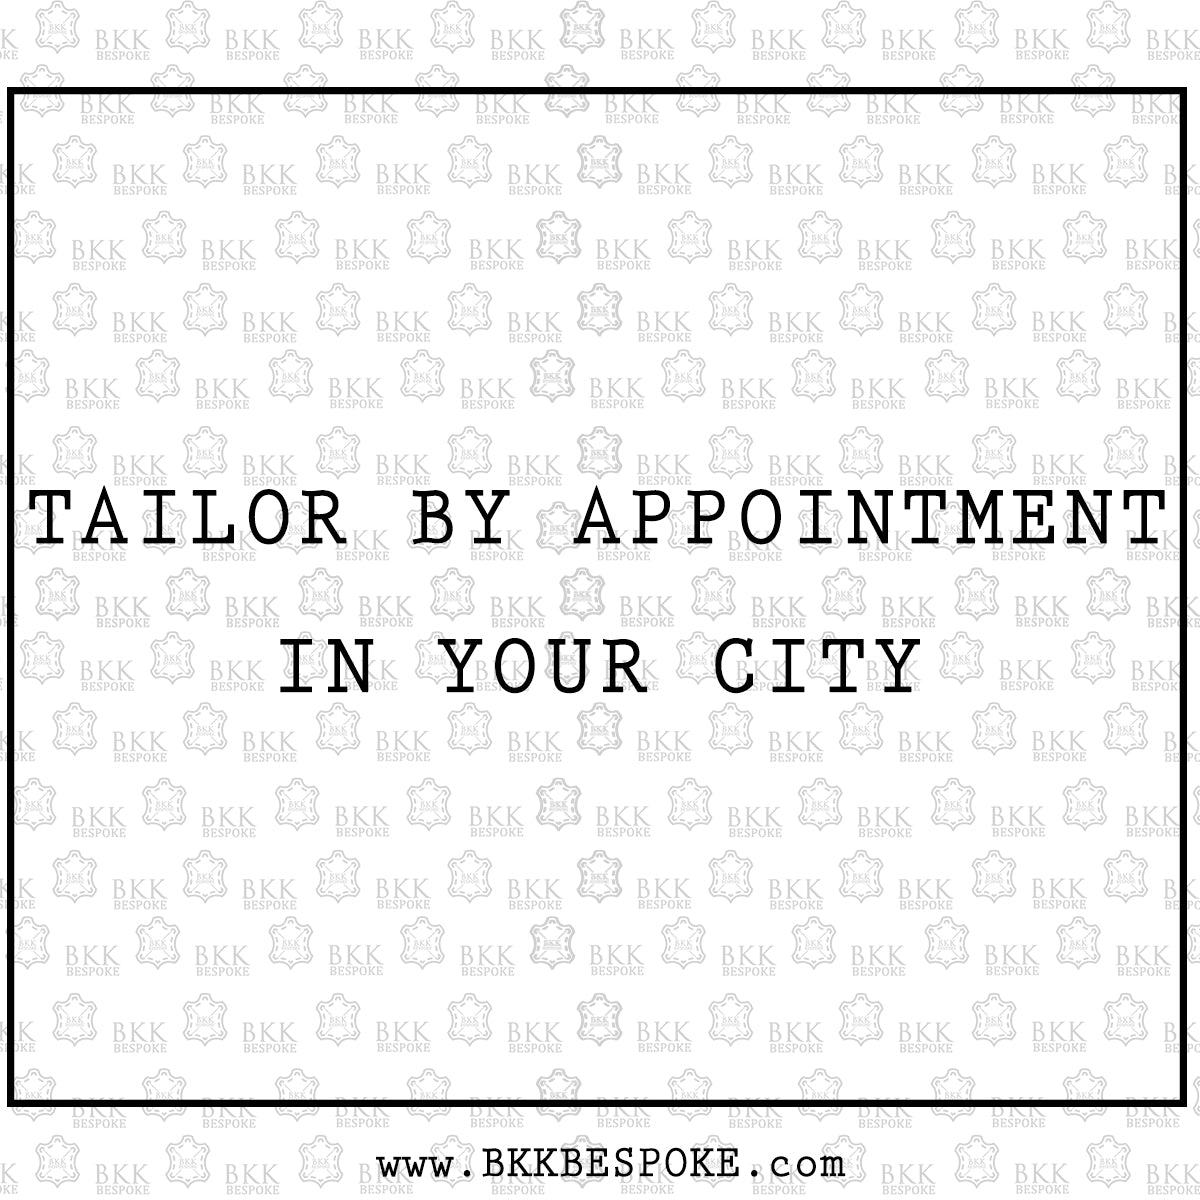 Traveling Tailor - Book an Appointment